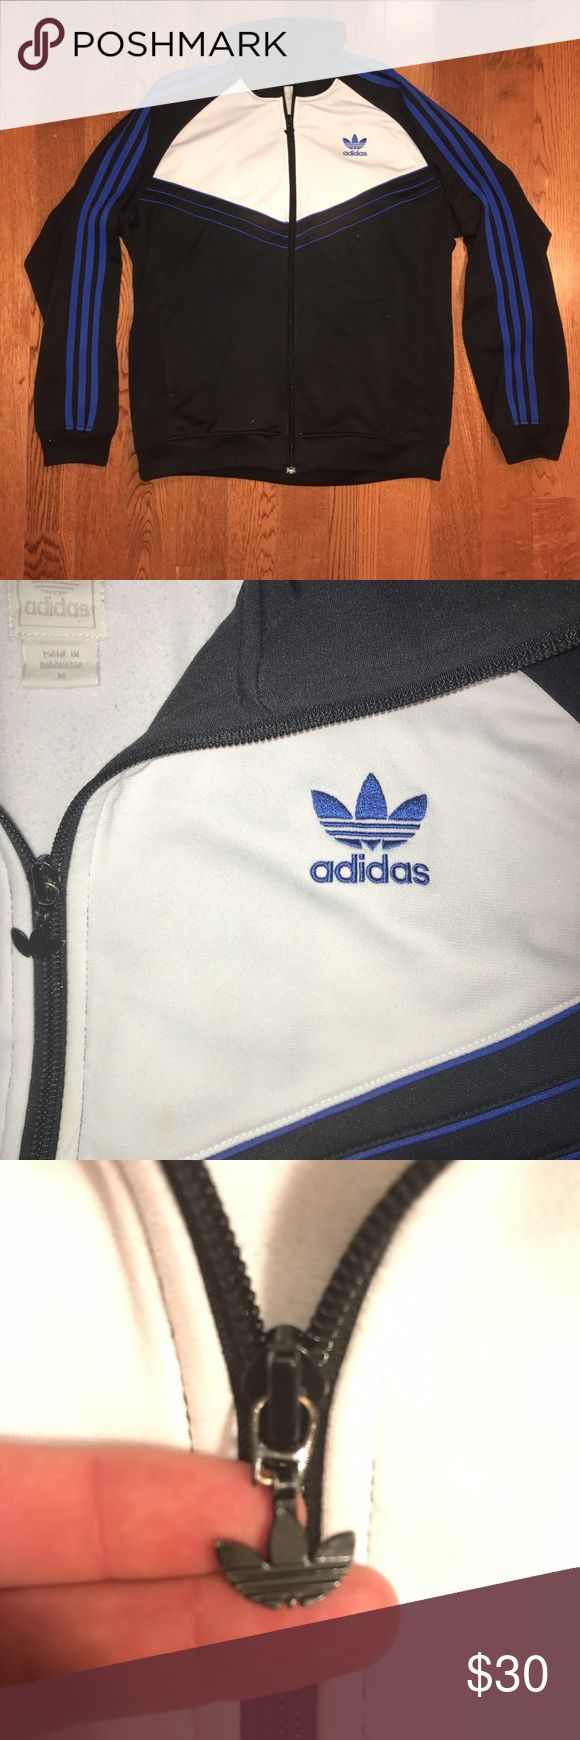 Vintage Adidas originals track jacket 🔥🔥super dope vintage adidas originals track jacket with logo zipper and 2 hand pockets🔥🔥 Tagged medium, true to size Excellent condition-9.5/10 No flaws or stains adidas Jackets & Coats Lightweight & Shirt Jackets